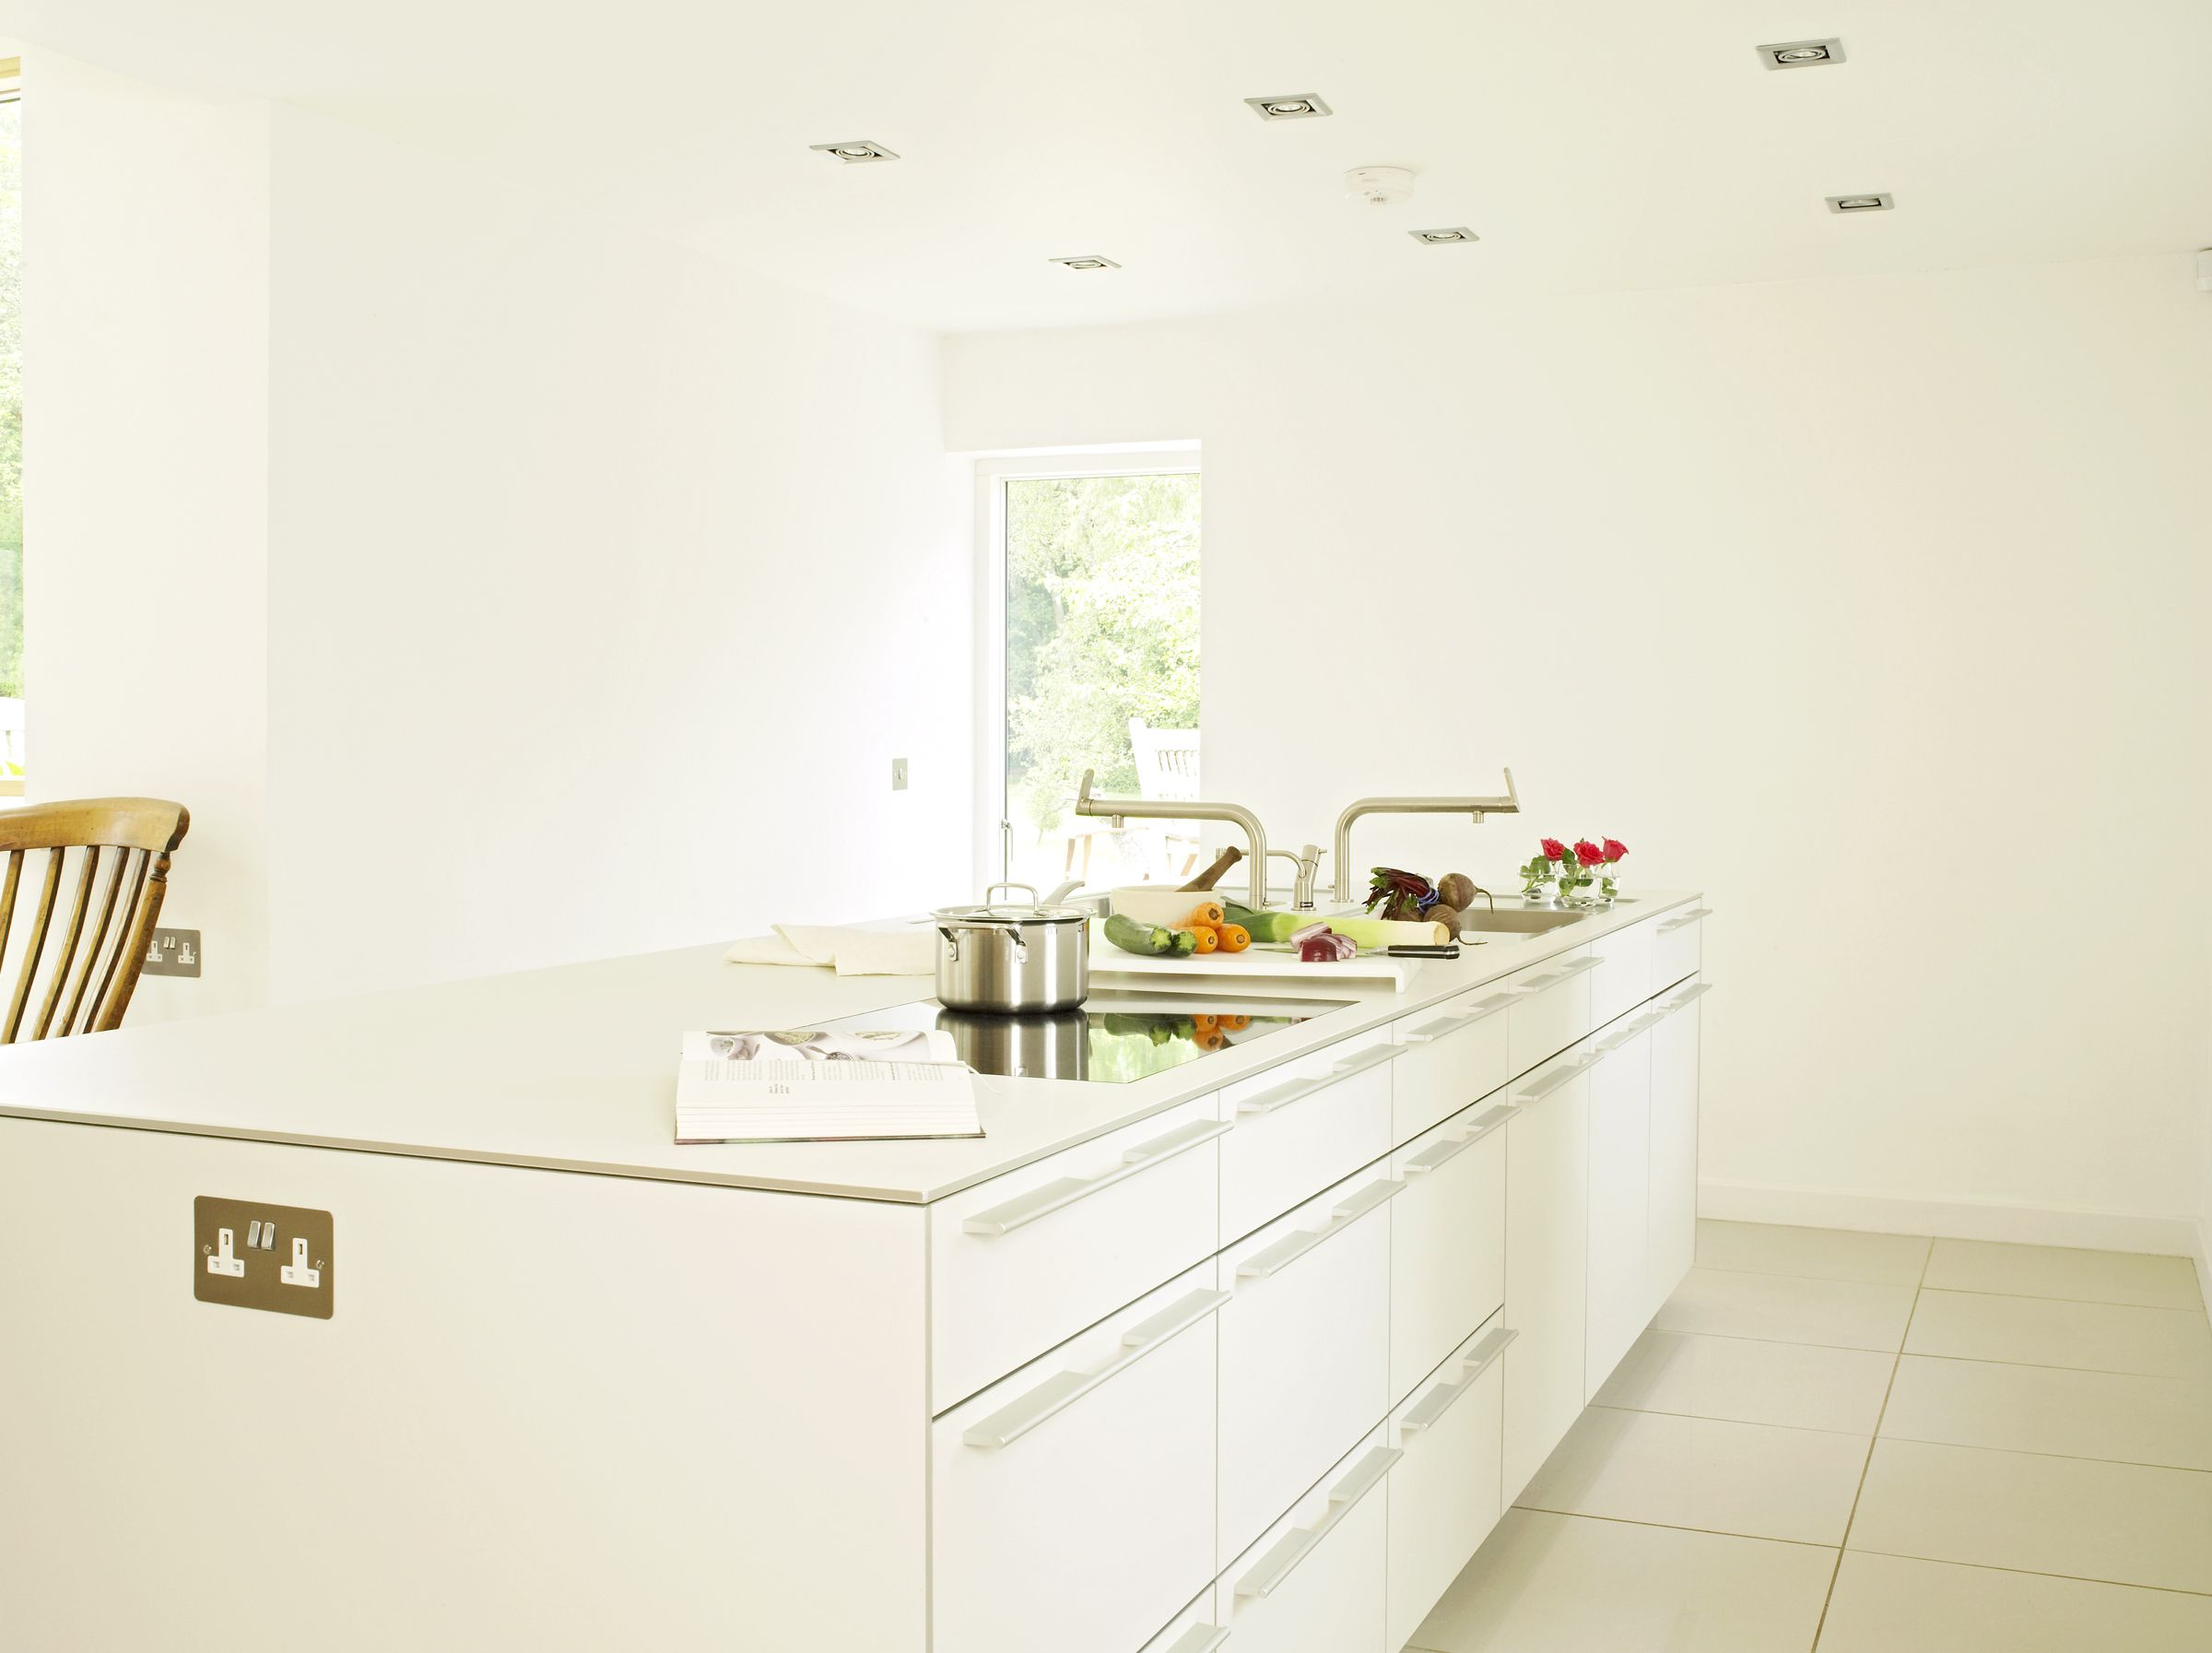 Depending on preference, the bulthaup b3 kitchen can come with ...